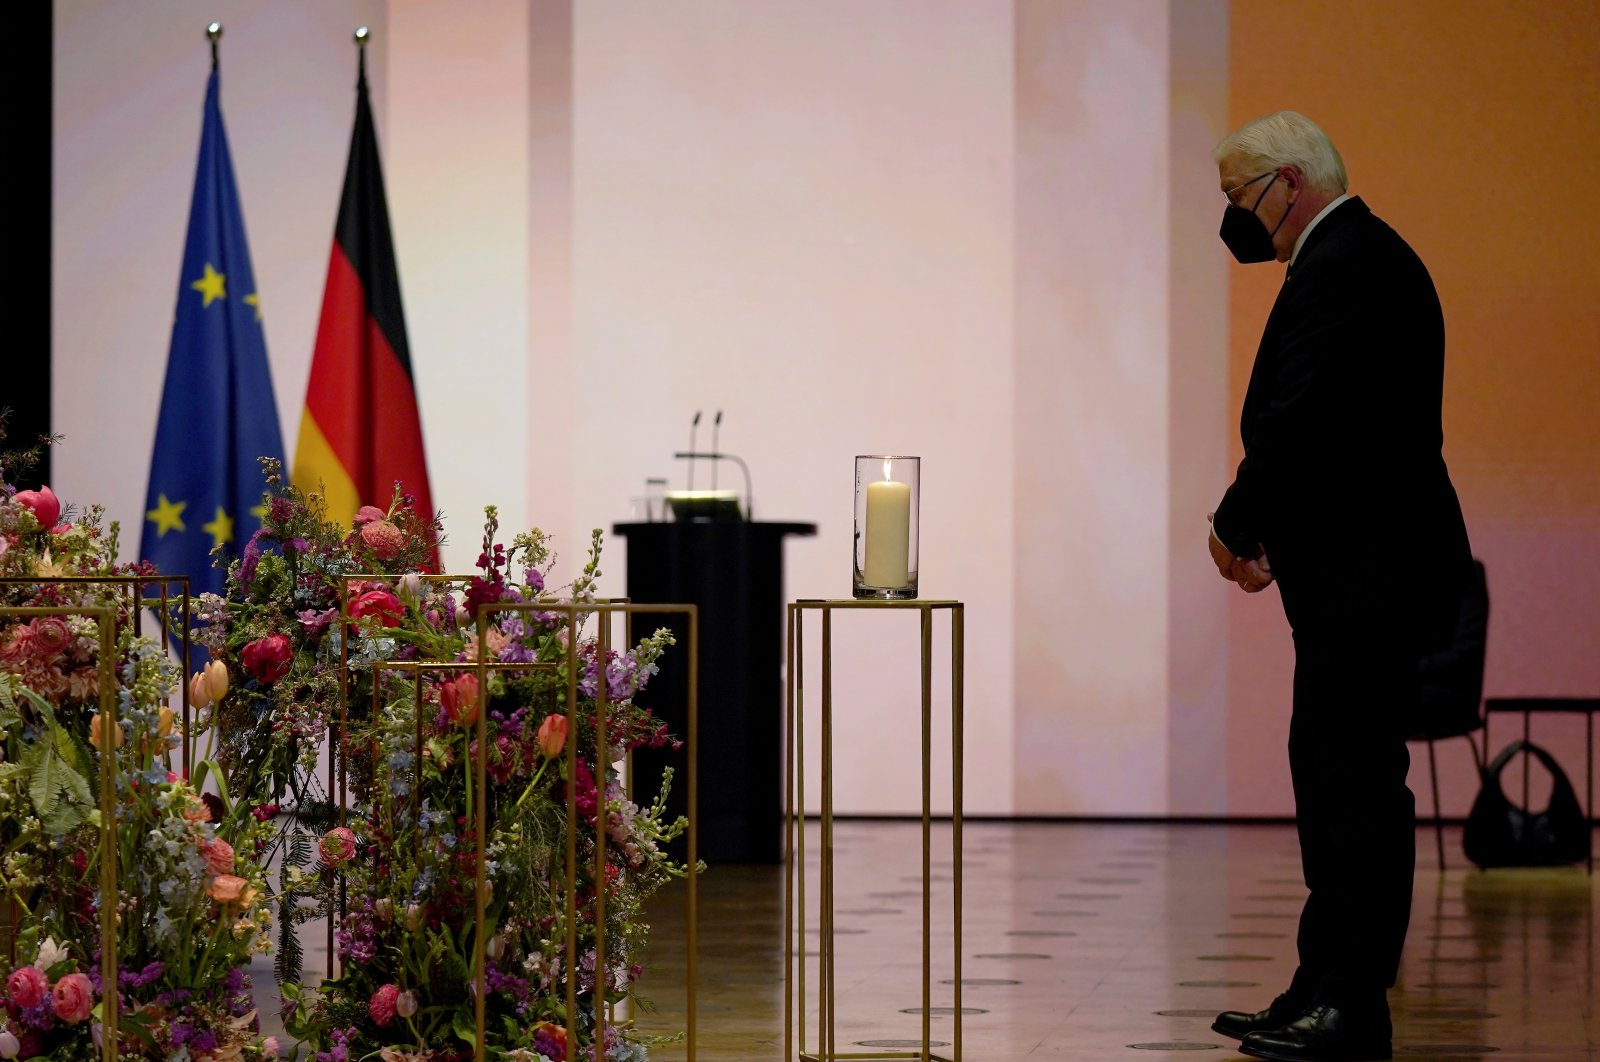 German President Frank-Walter Steinmeier stands next to a candle during a memorial ceremony for the victims of the COVID-19 pandemic, in Berlin, Germany, April 18, 2021. (Reuters Photo)